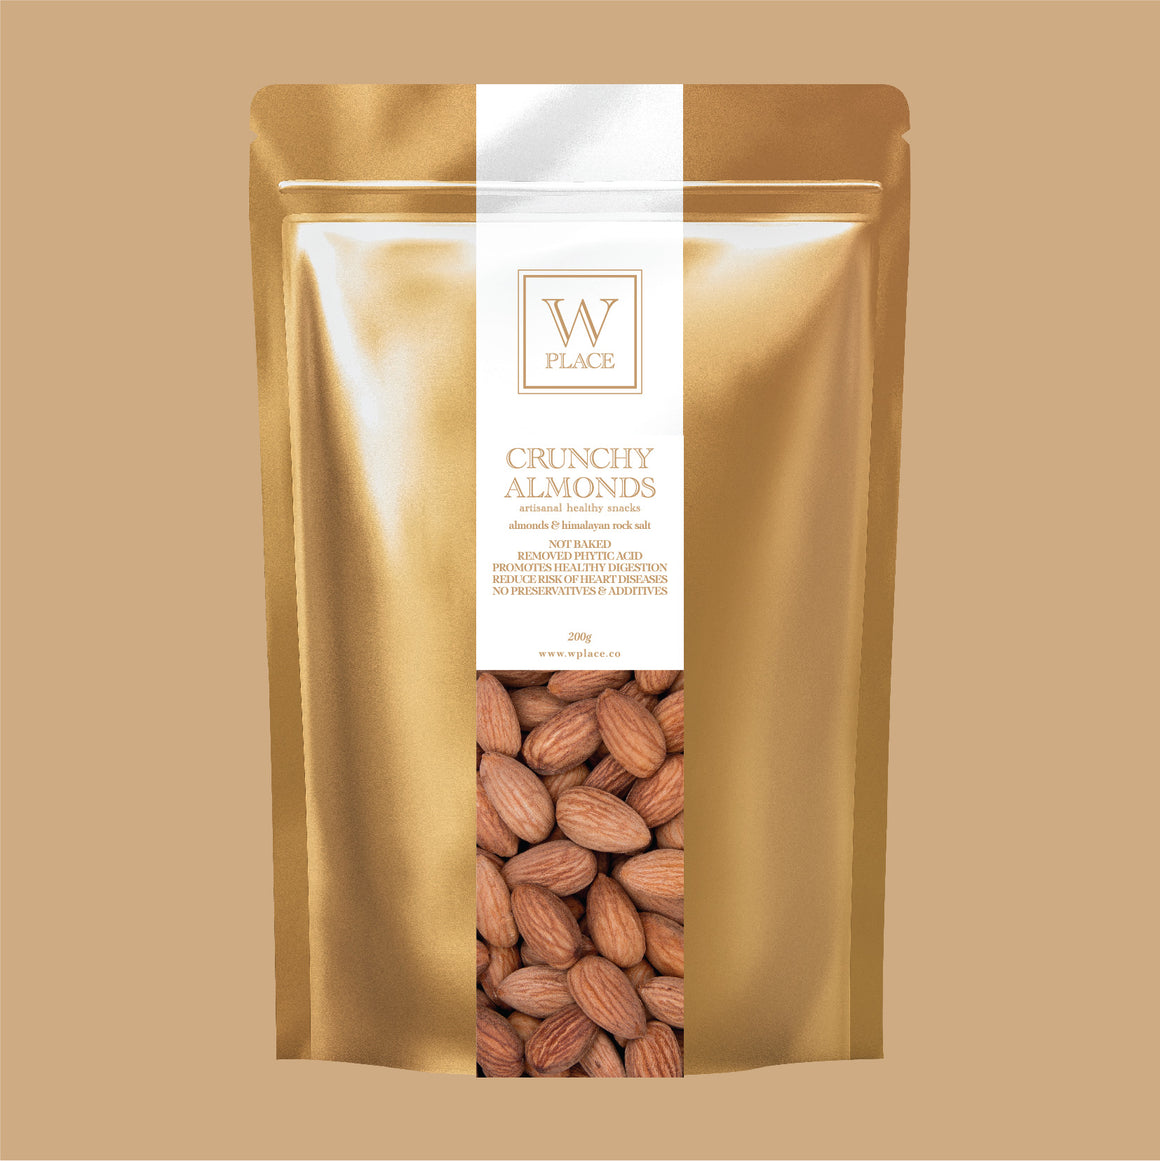 CRUNCHY ALMONDS | 200g (Not Baked | Removed Phytic Acids | Vegan)